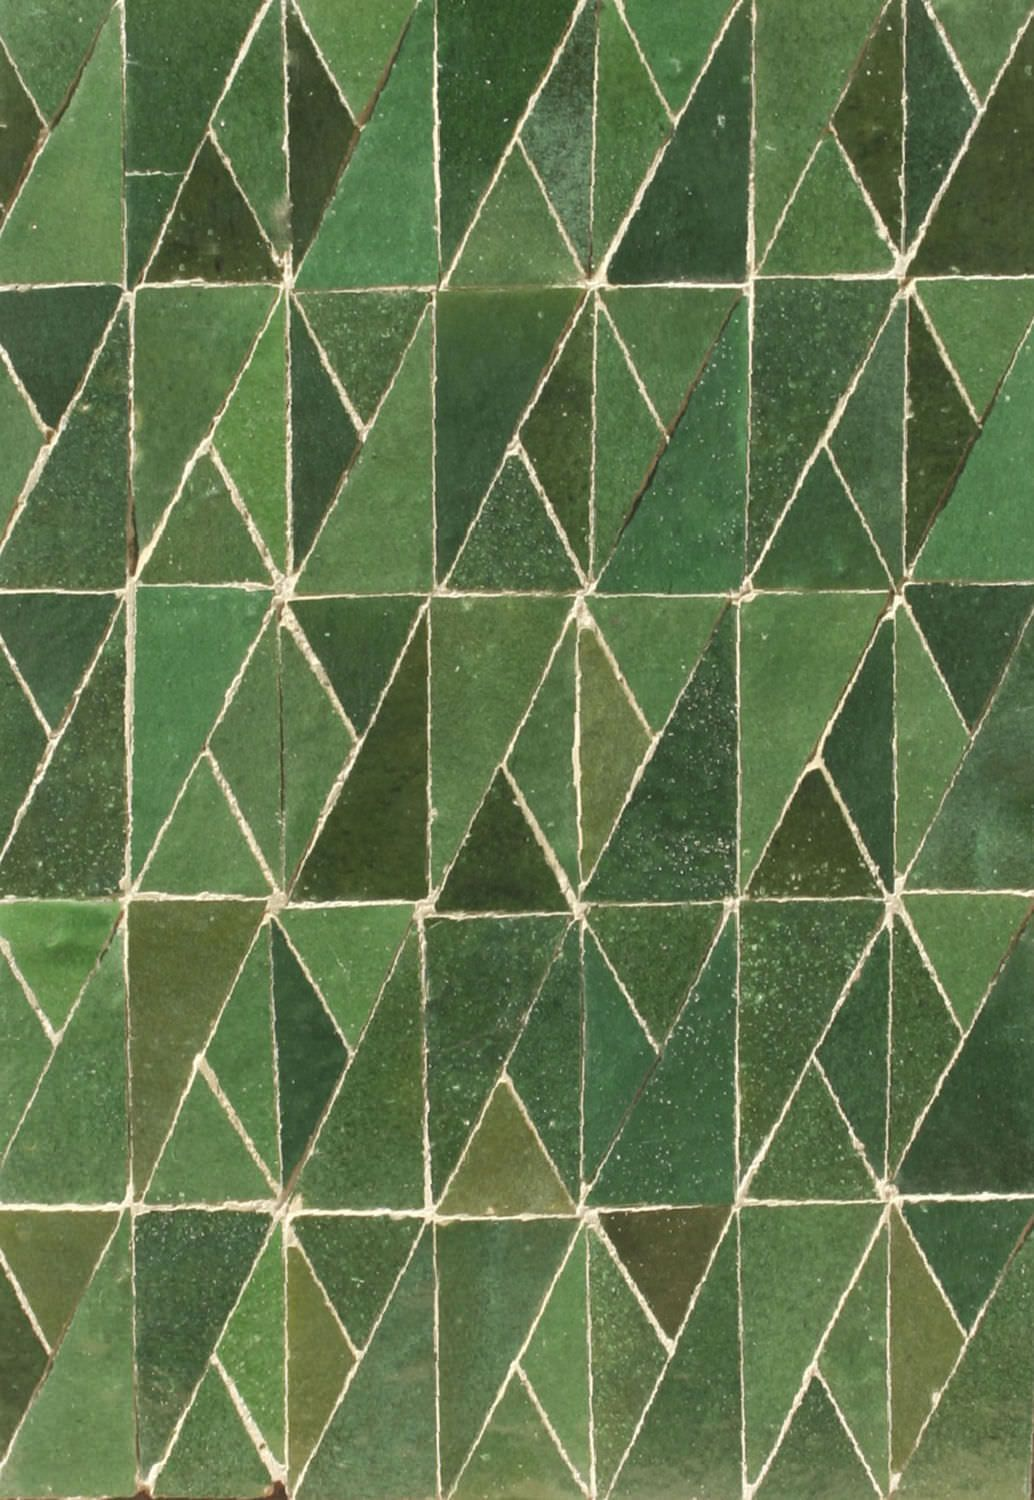 Floor tile wall mounted cement textured zelliges creative discover all the information about the product indoor tile floor cement geometric pattern zelliges creative trendy green ateliers zelij and find dailygadgetfo Choice Image